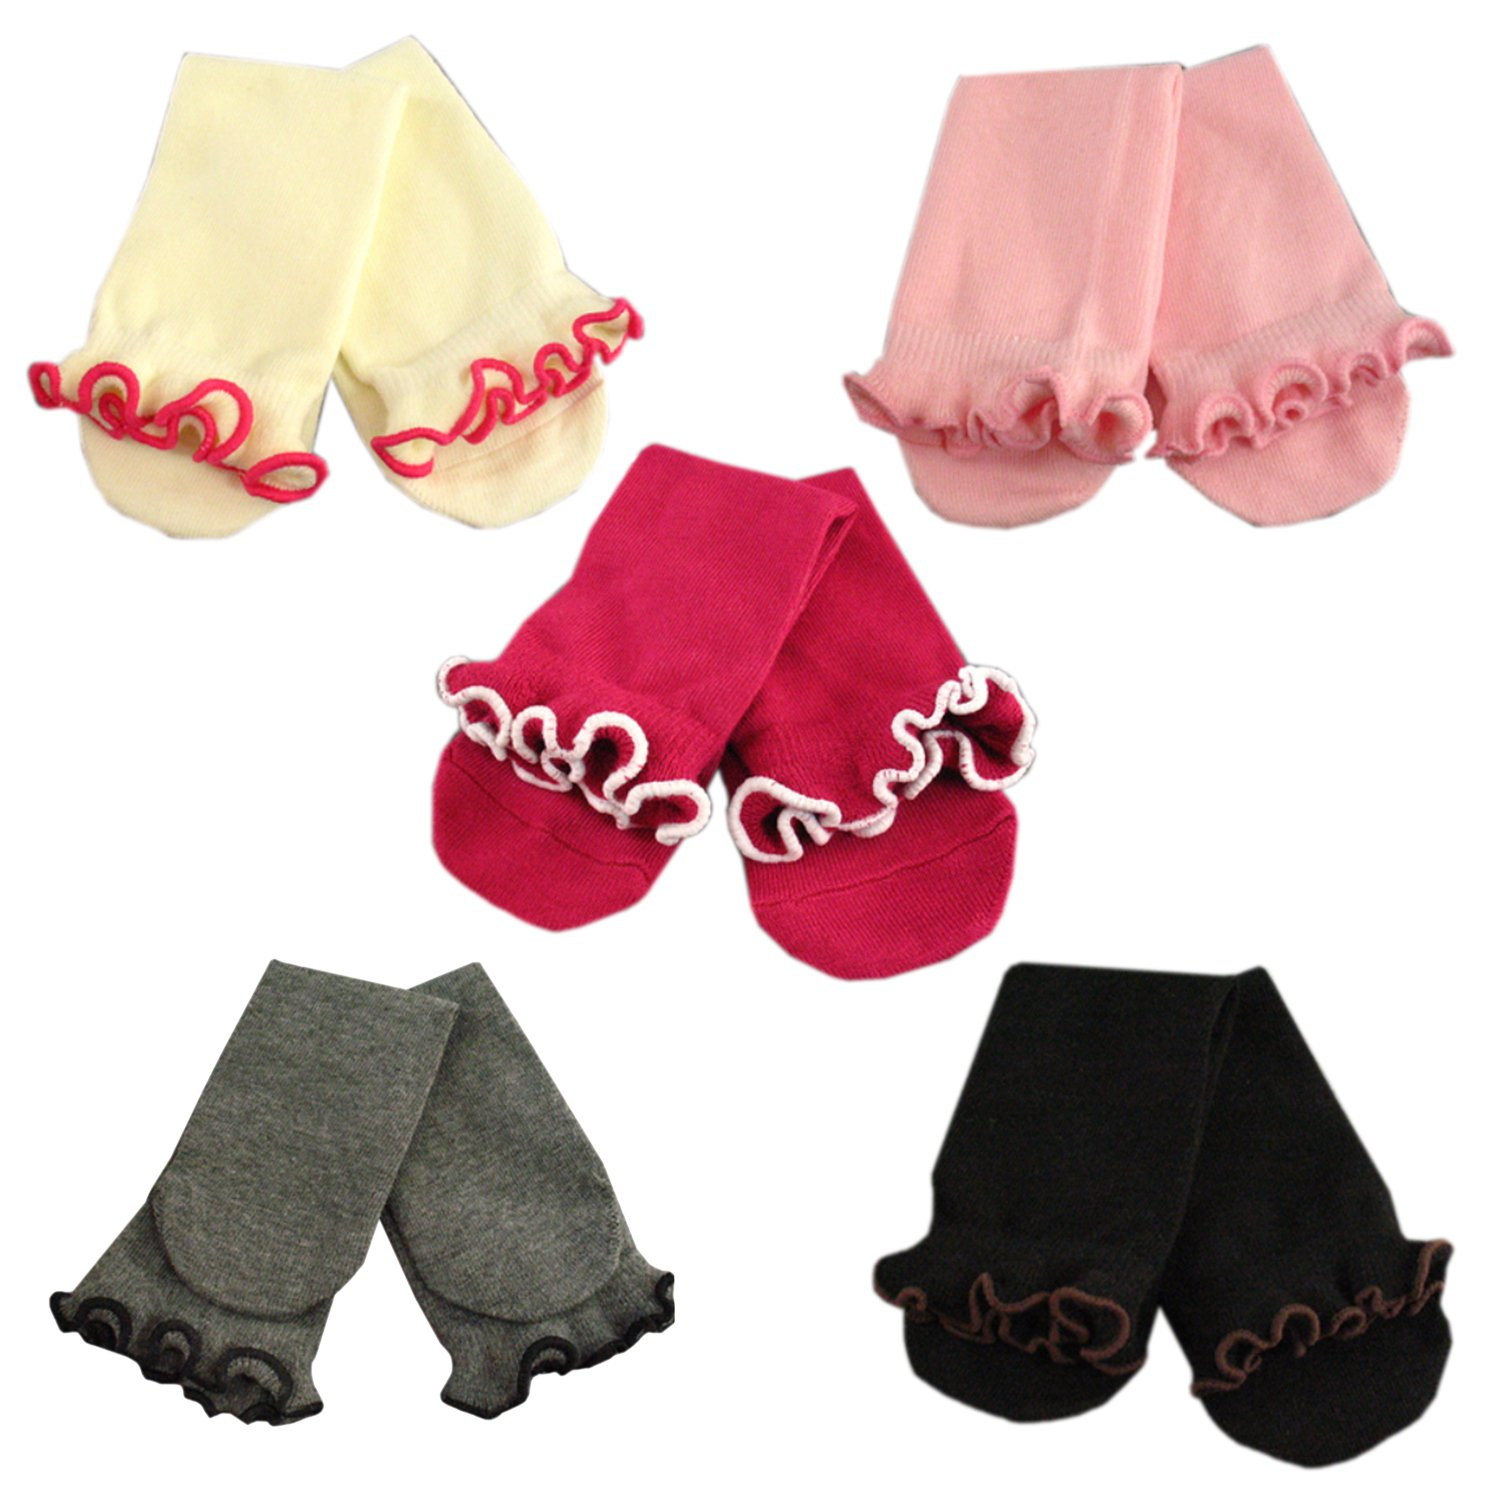 513ad3e8505 Amazon.com  Deer Mum Kids Toddler Girls Colorful Lace Frilly Knee Stocking  Boot Socks 5 Pairs 3-6 Yrs (Multicolor1)  Clothing